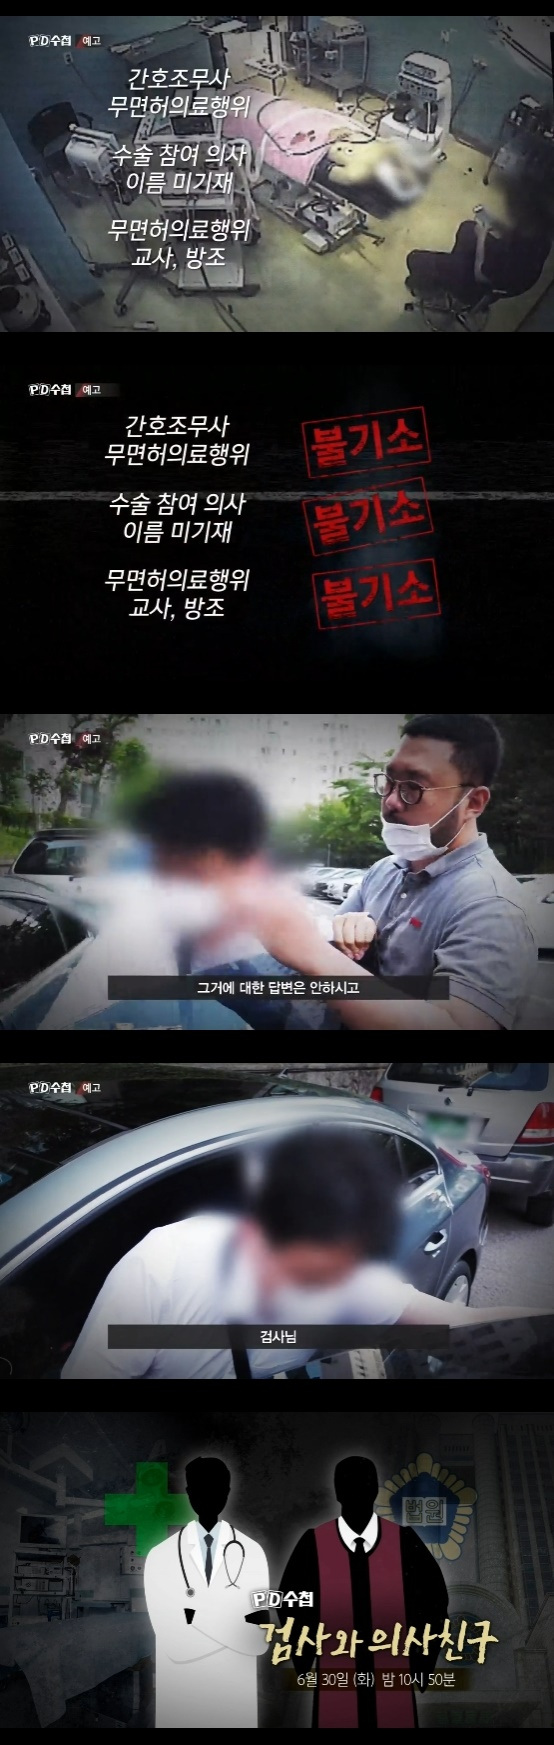 pd notebook 故 Kwon Dae-hee's death case indictment of death Seoul National University Prosecutor's Prosecutor's Prosecutor Mary, the suspect's attorney in the same year as college graduate and judicial training incentive?